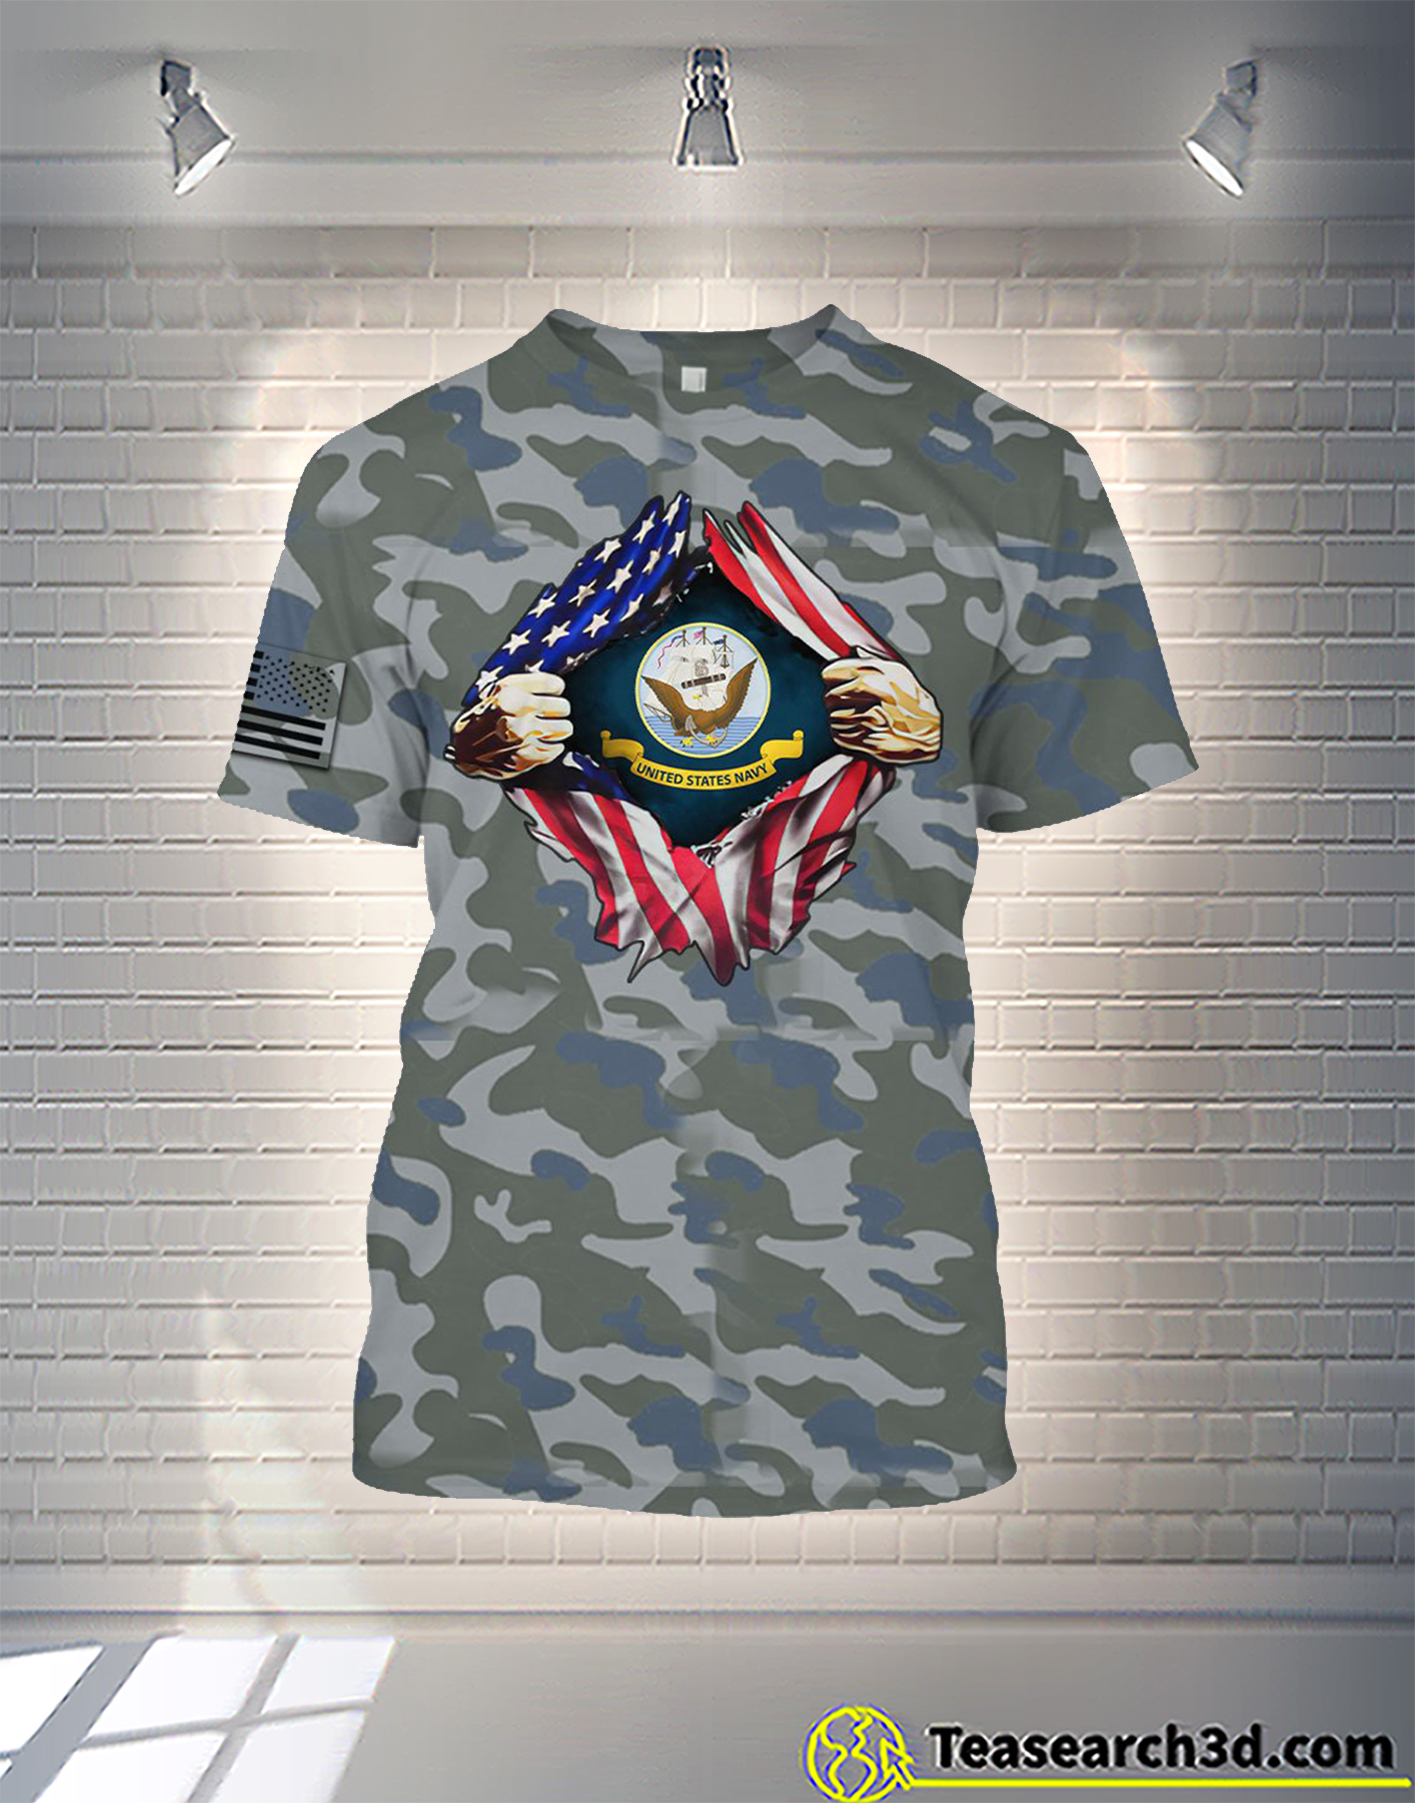 United States Navy camo all over printed shirt